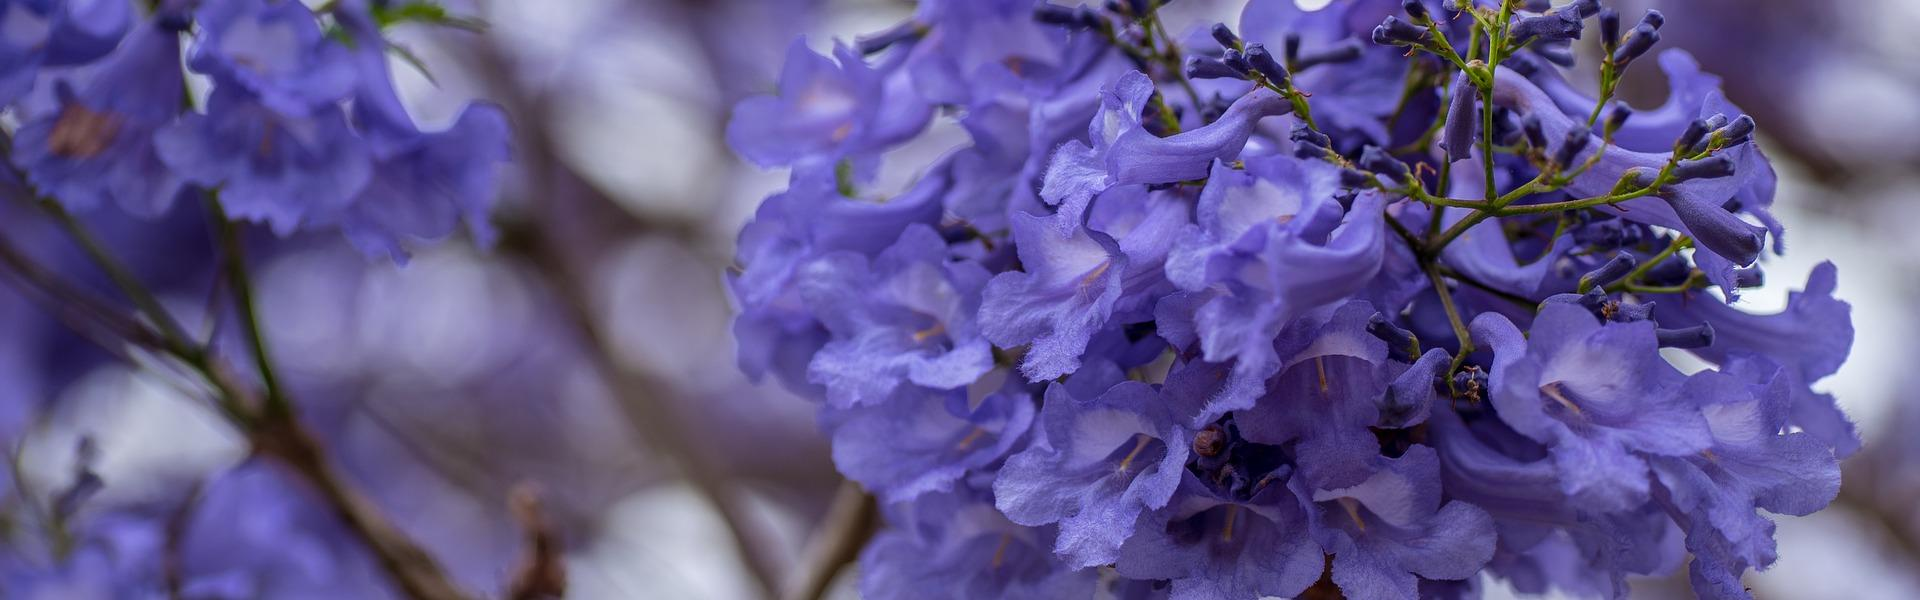 The flowers of a Jacaranda tree.